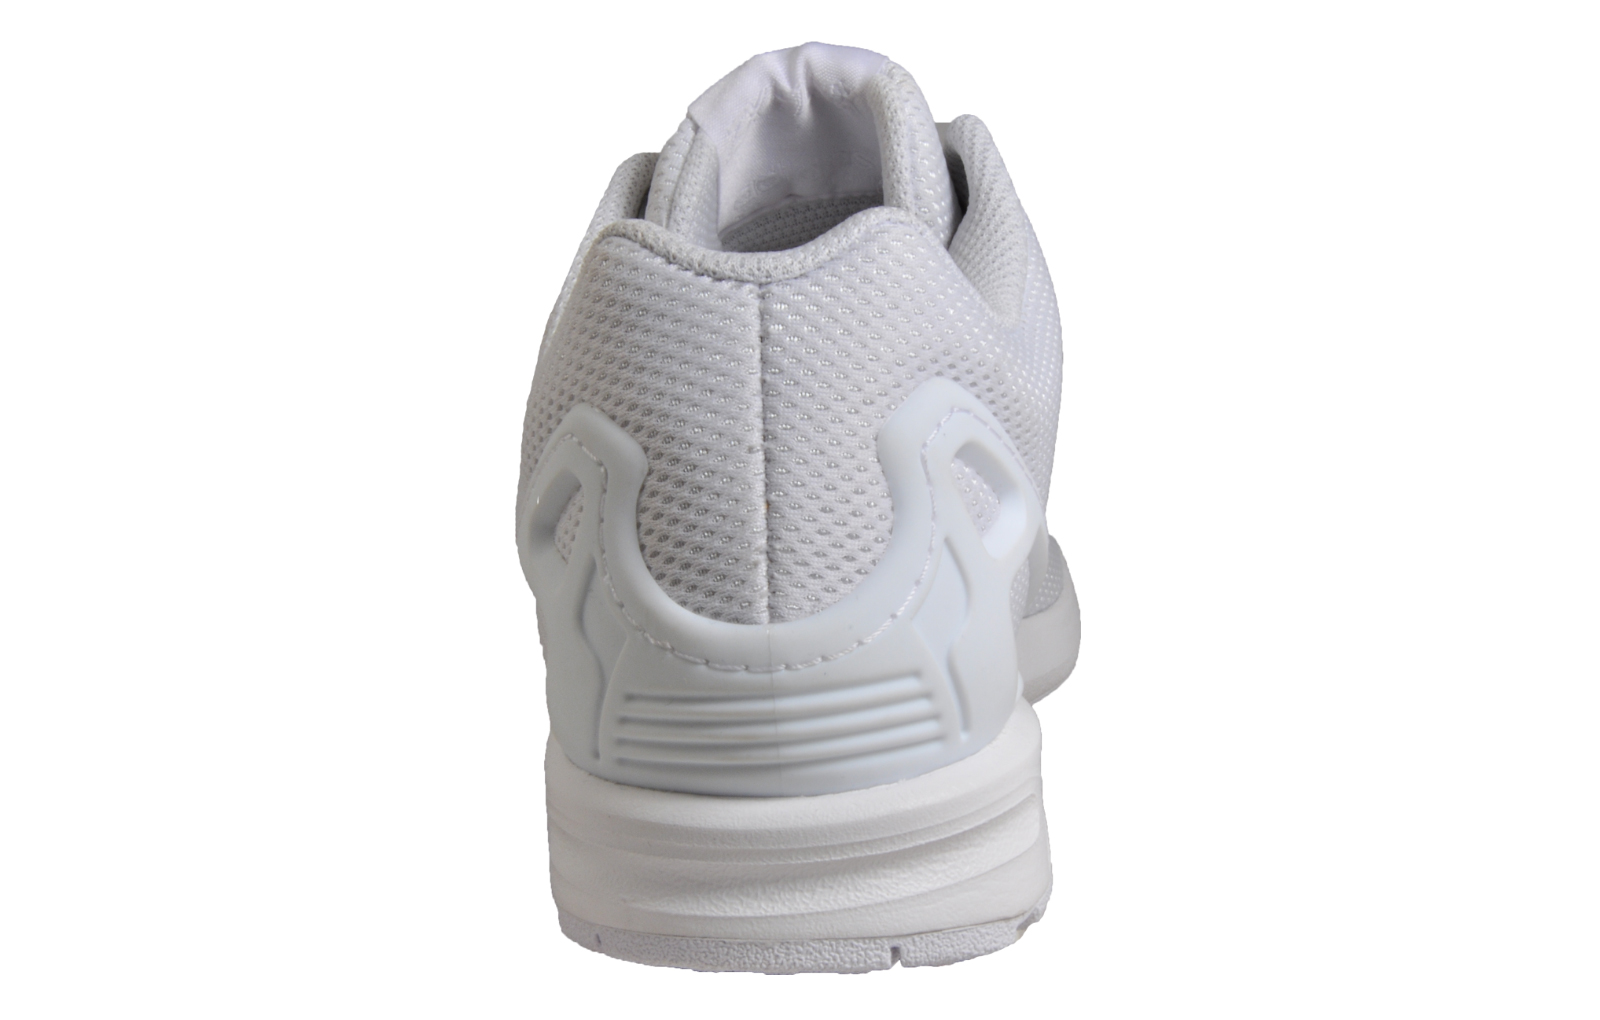 75ff89f2d89cf Adidas Originals ZX Flux Uni Classic Casual Retro Trainers White UK 4 Only